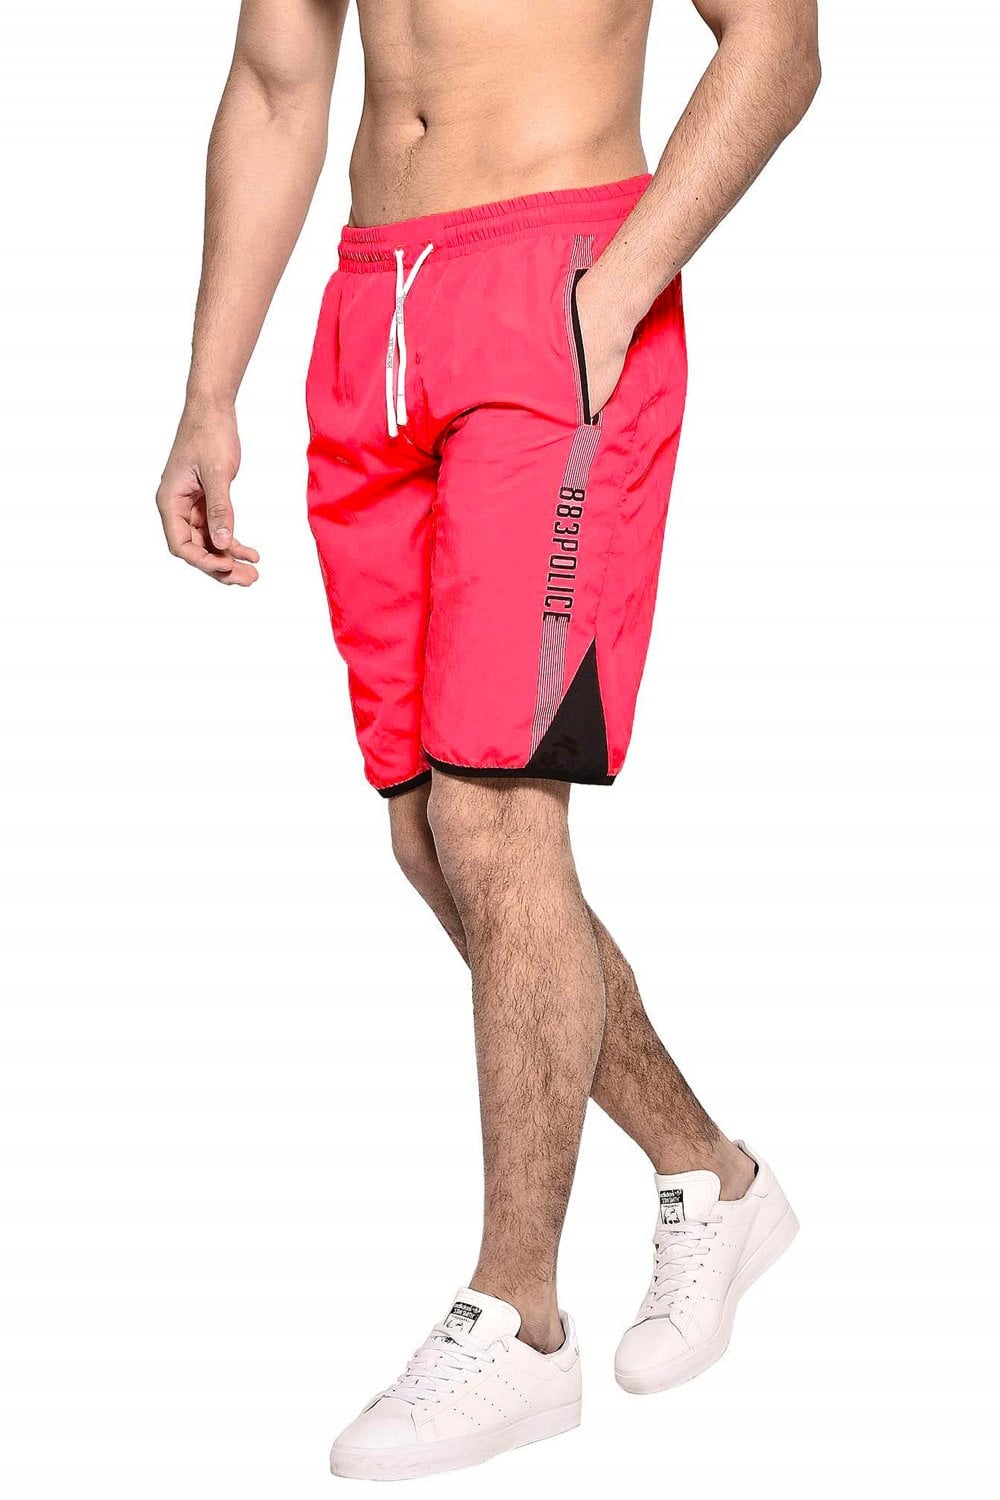 487fb8a6a06 883 Police Windle Red Swim Shorts | Shop 883 Mens Swimwear & Shorts